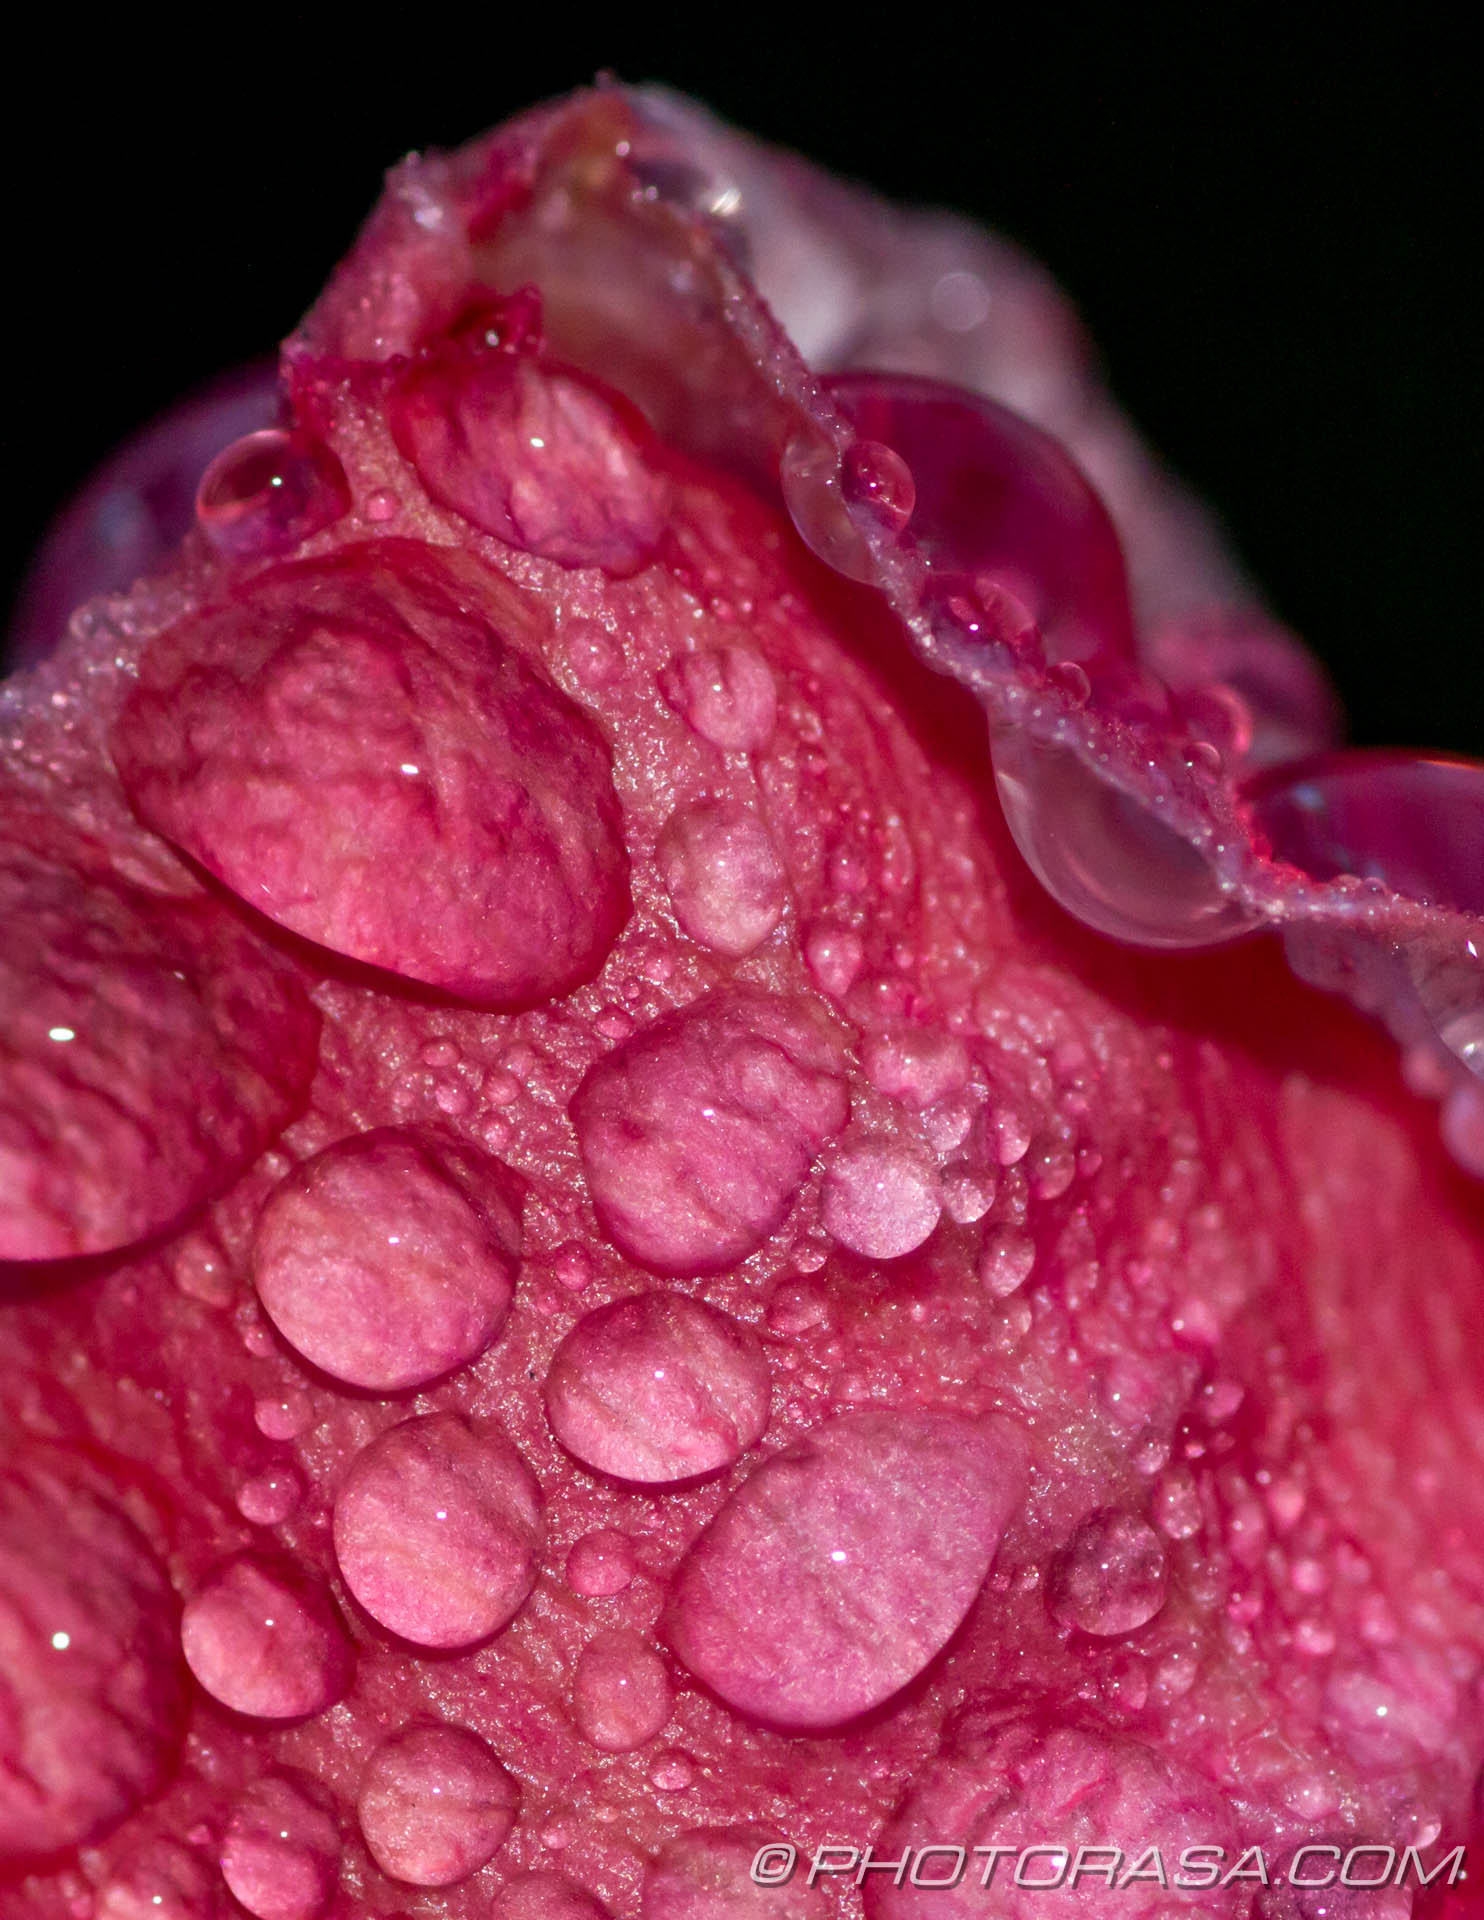 http://photorasa.com/pink-rose-in-the-rain/meaty-pink-rose-and-water-drops/